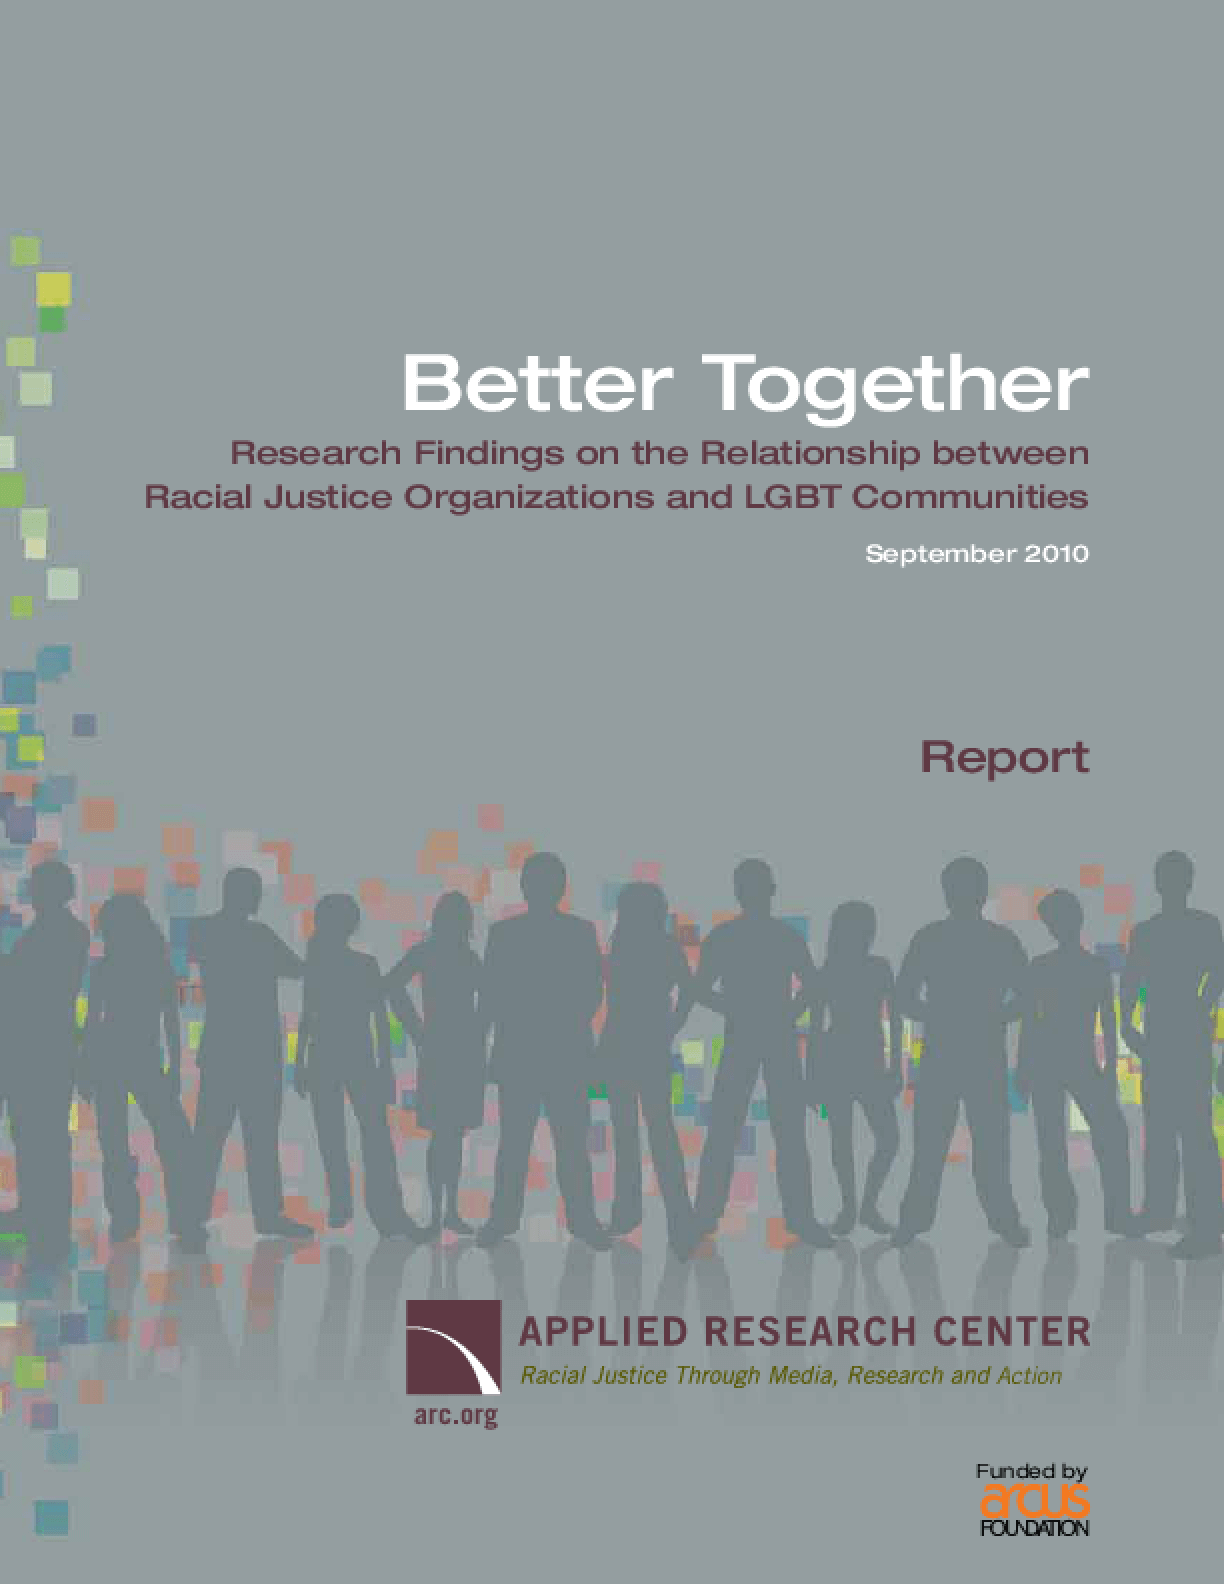 Better Together: Research Findings on the Relationship between Racial Justice Organizations and LGBT Communities